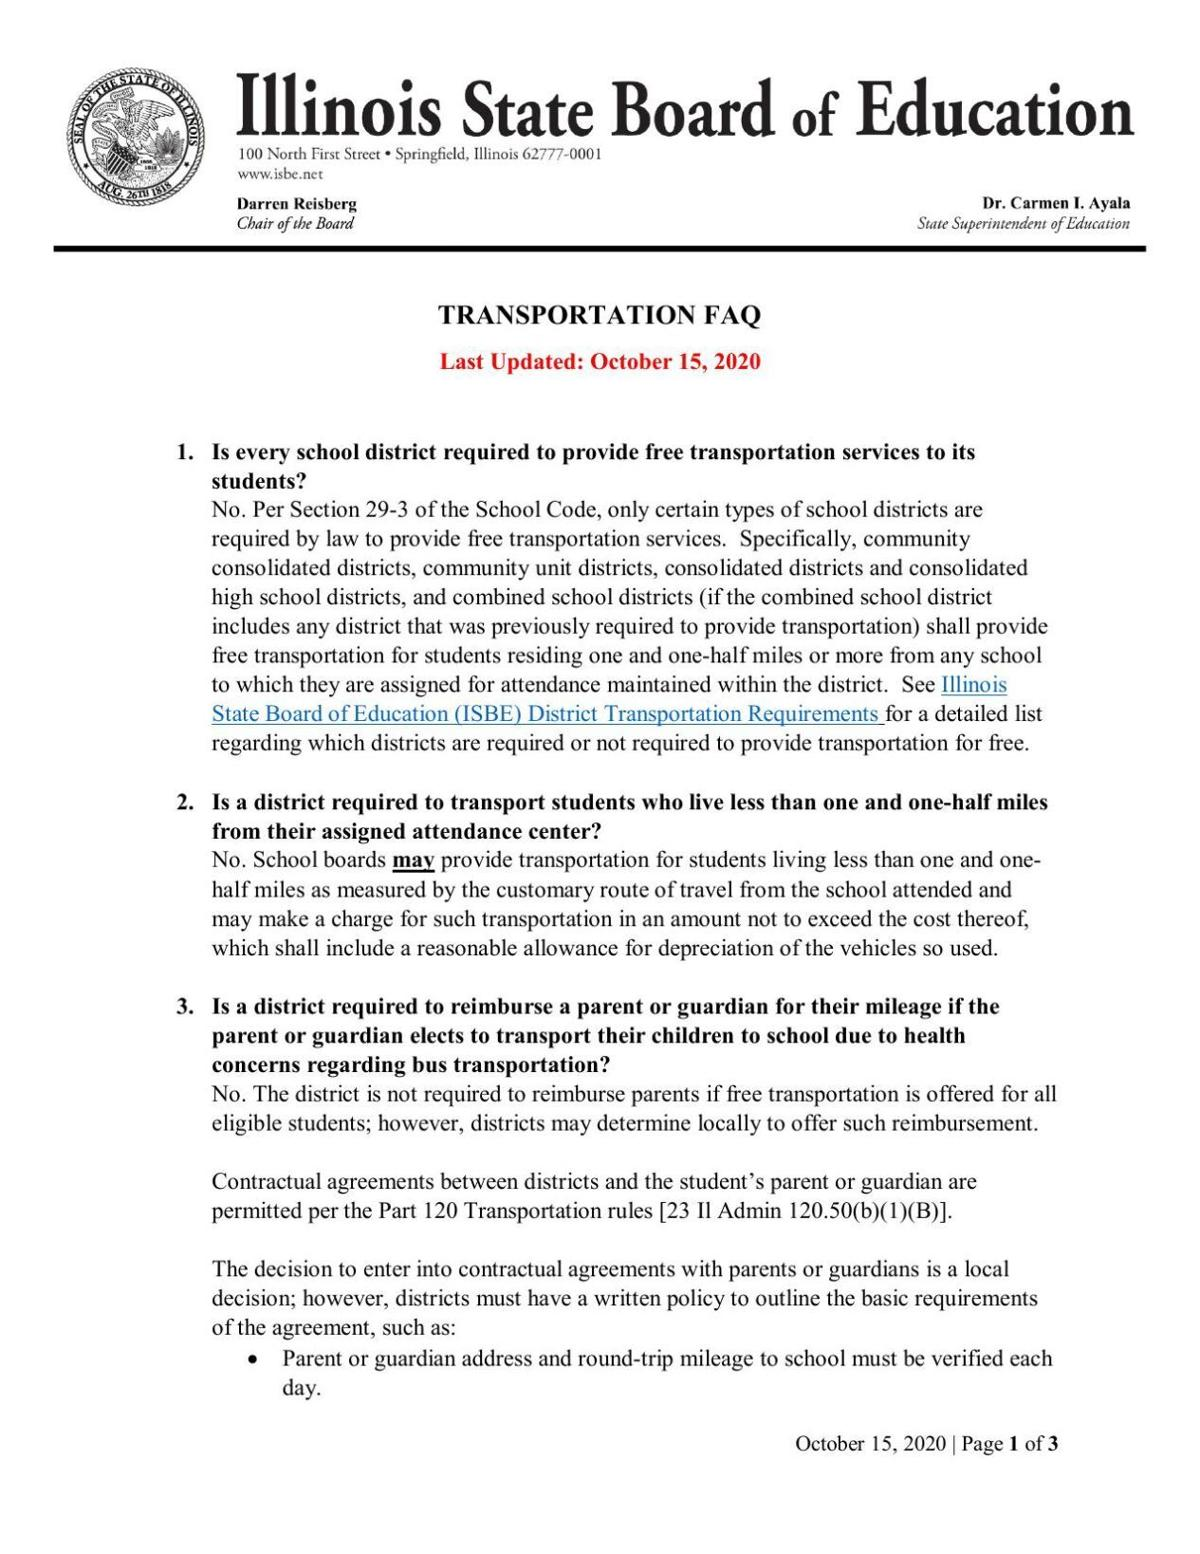 Illinois State Board of Education transportation guidelines